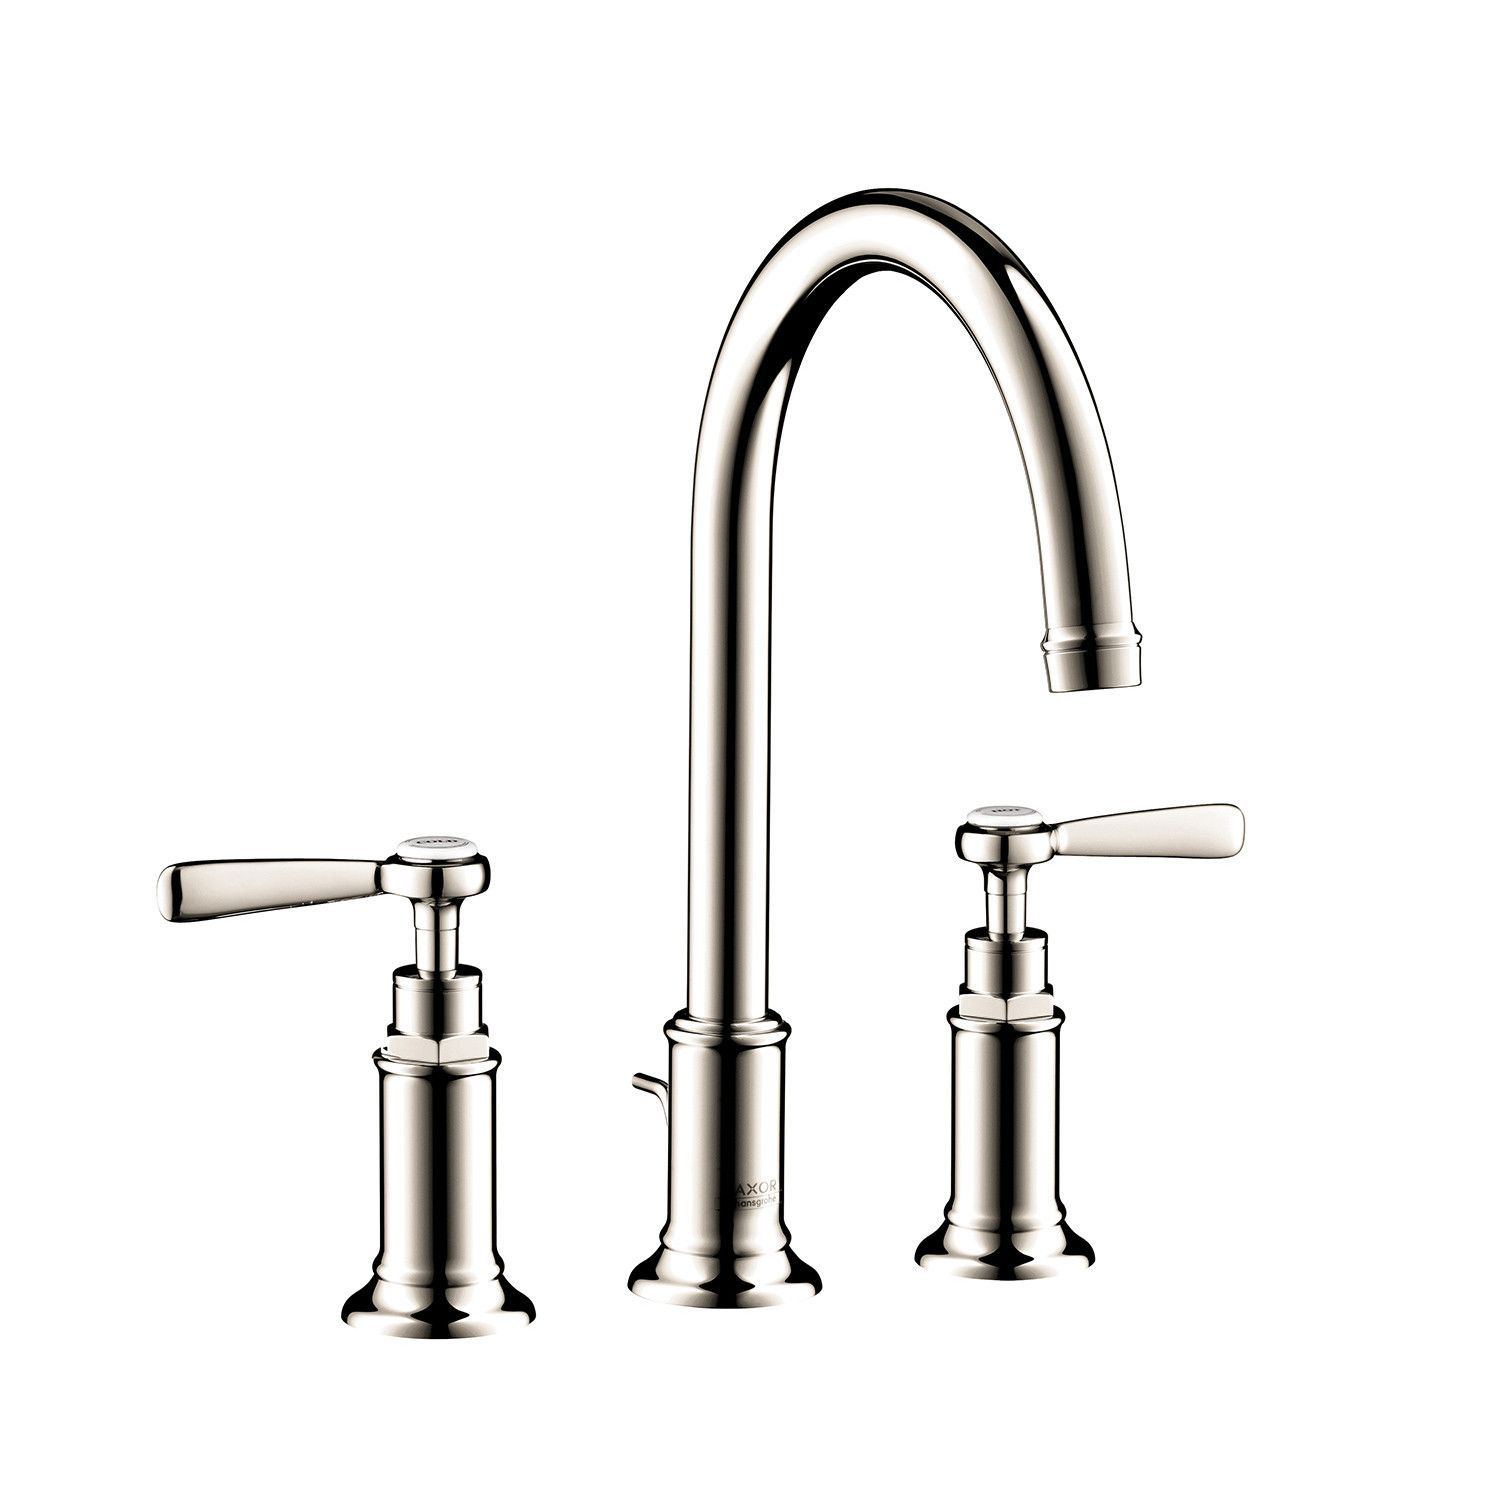 Hansgrohe 16514831 Polished Nickel Axor Montreux Bathroom Faucet ...